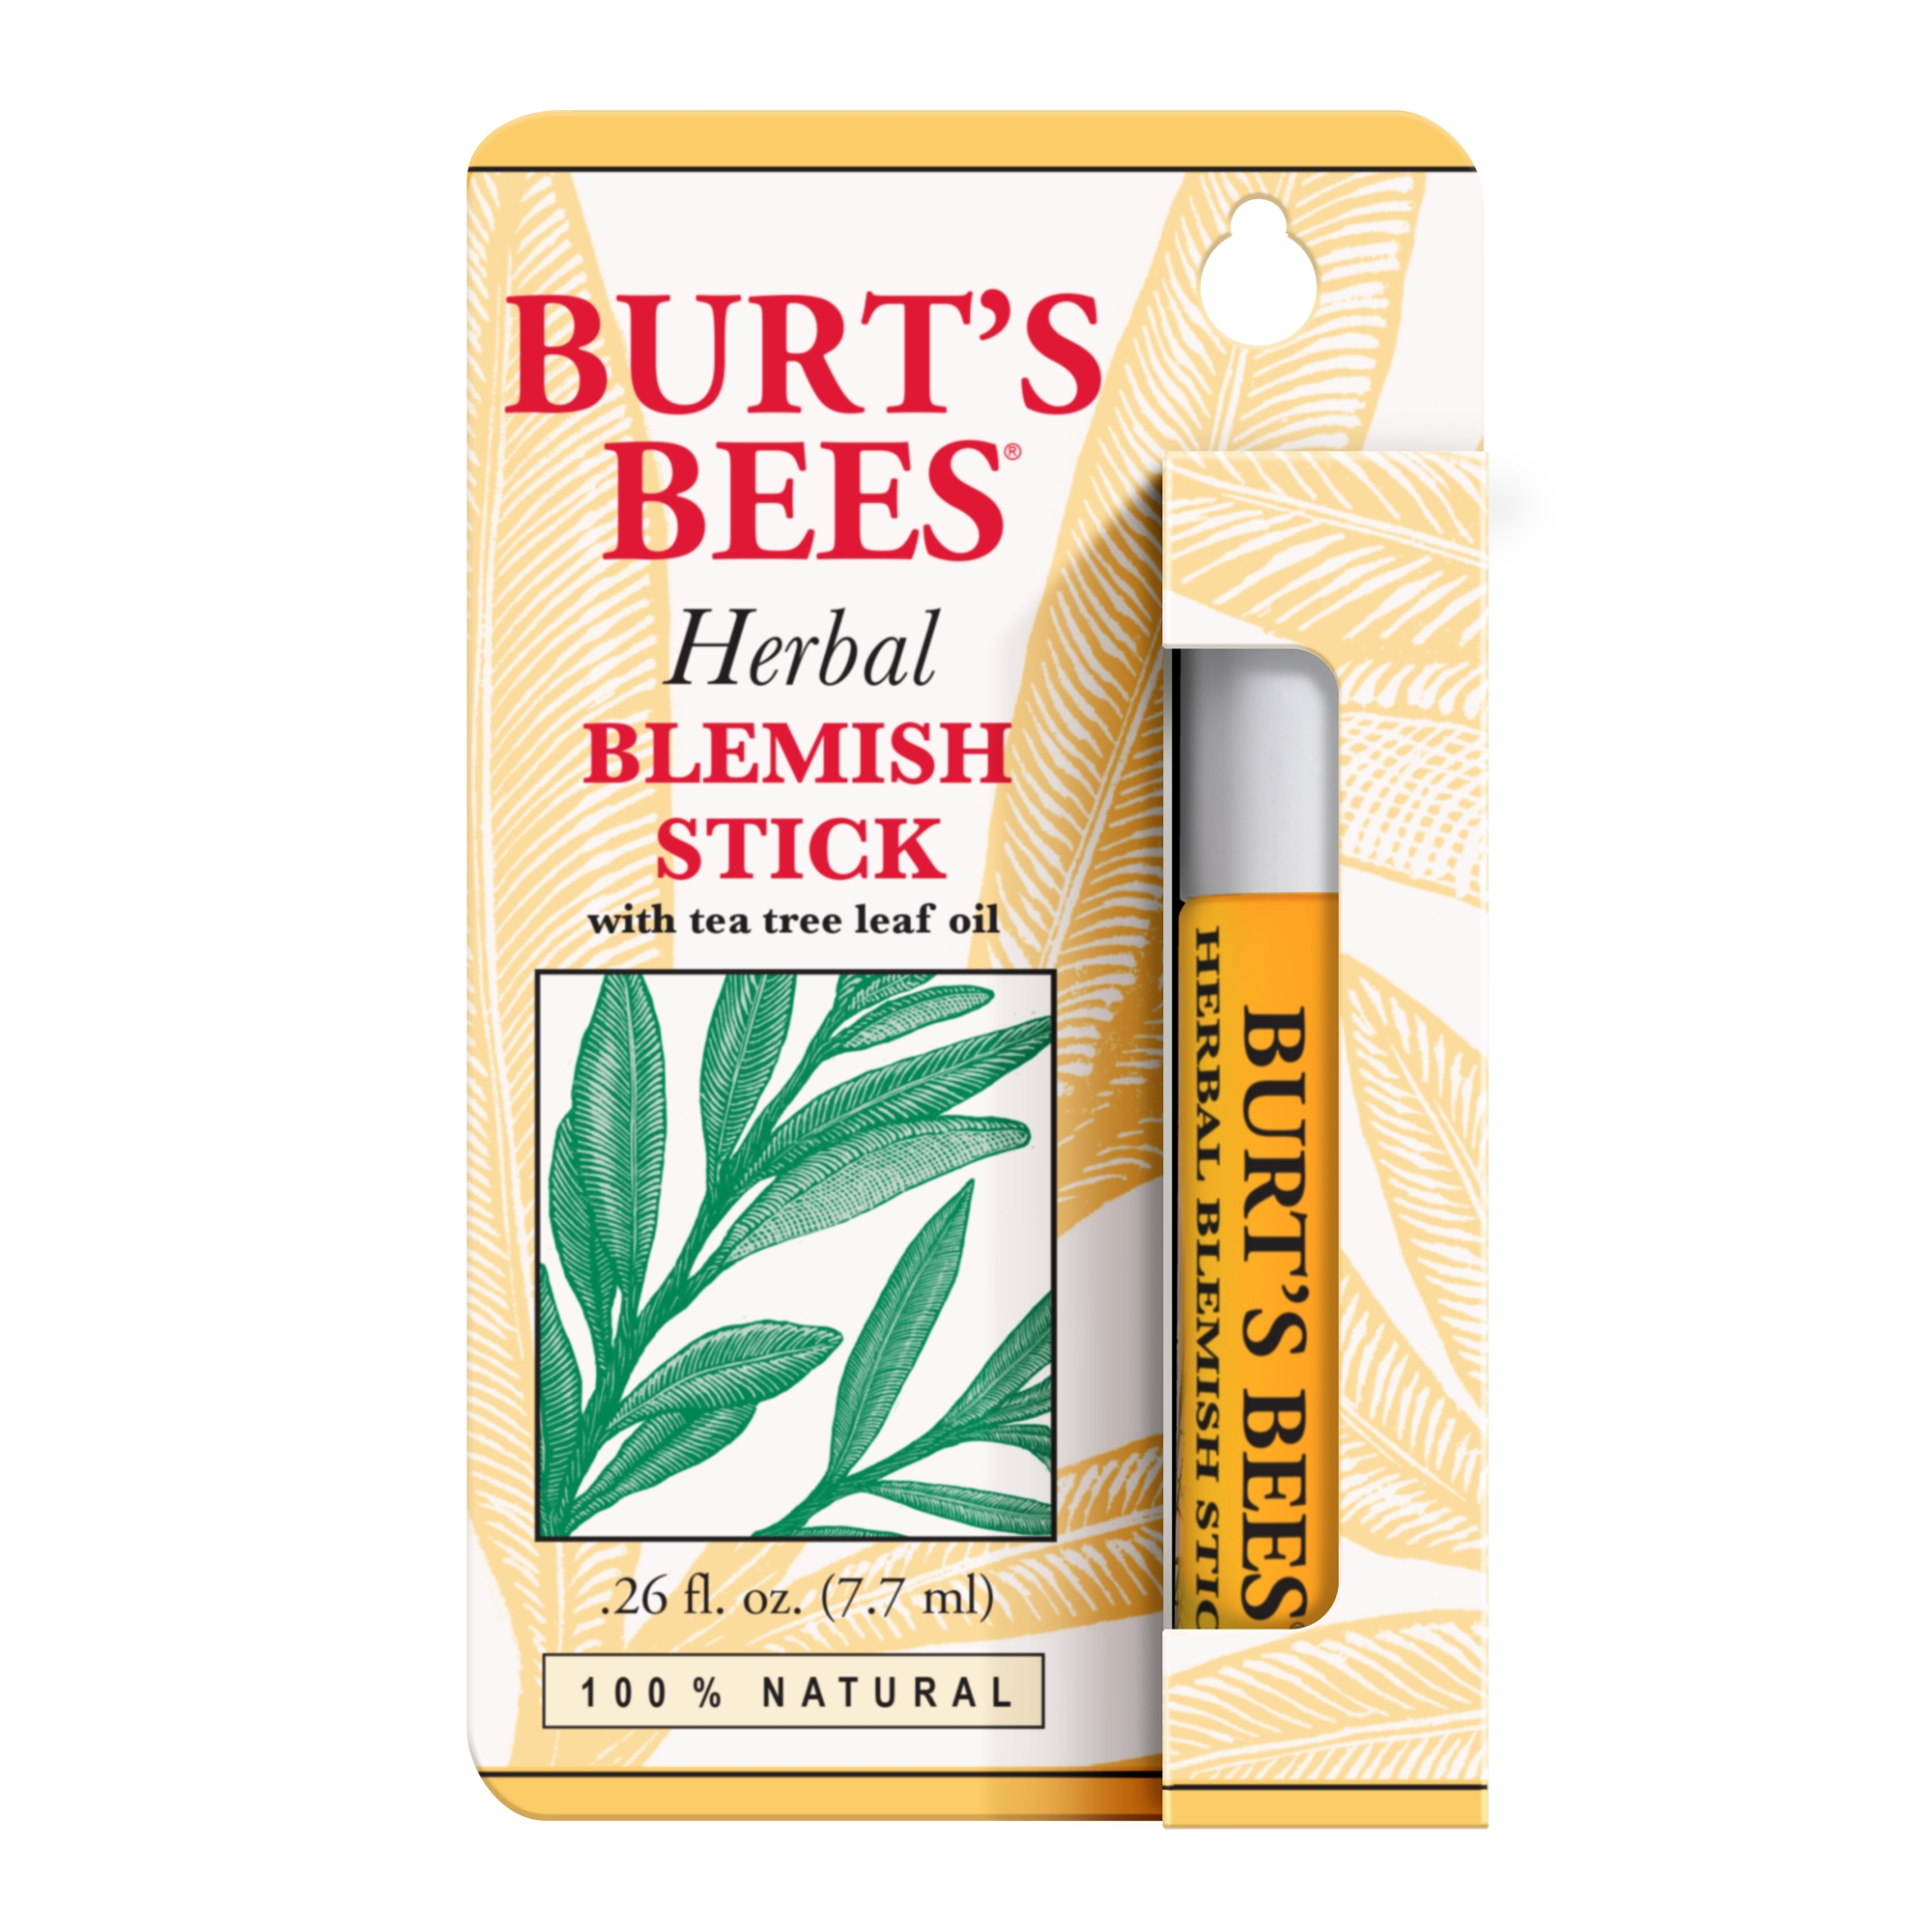 Burt's Bees 100% Natural Herbal Blemish Stick, 0.26 Fluid Ounce